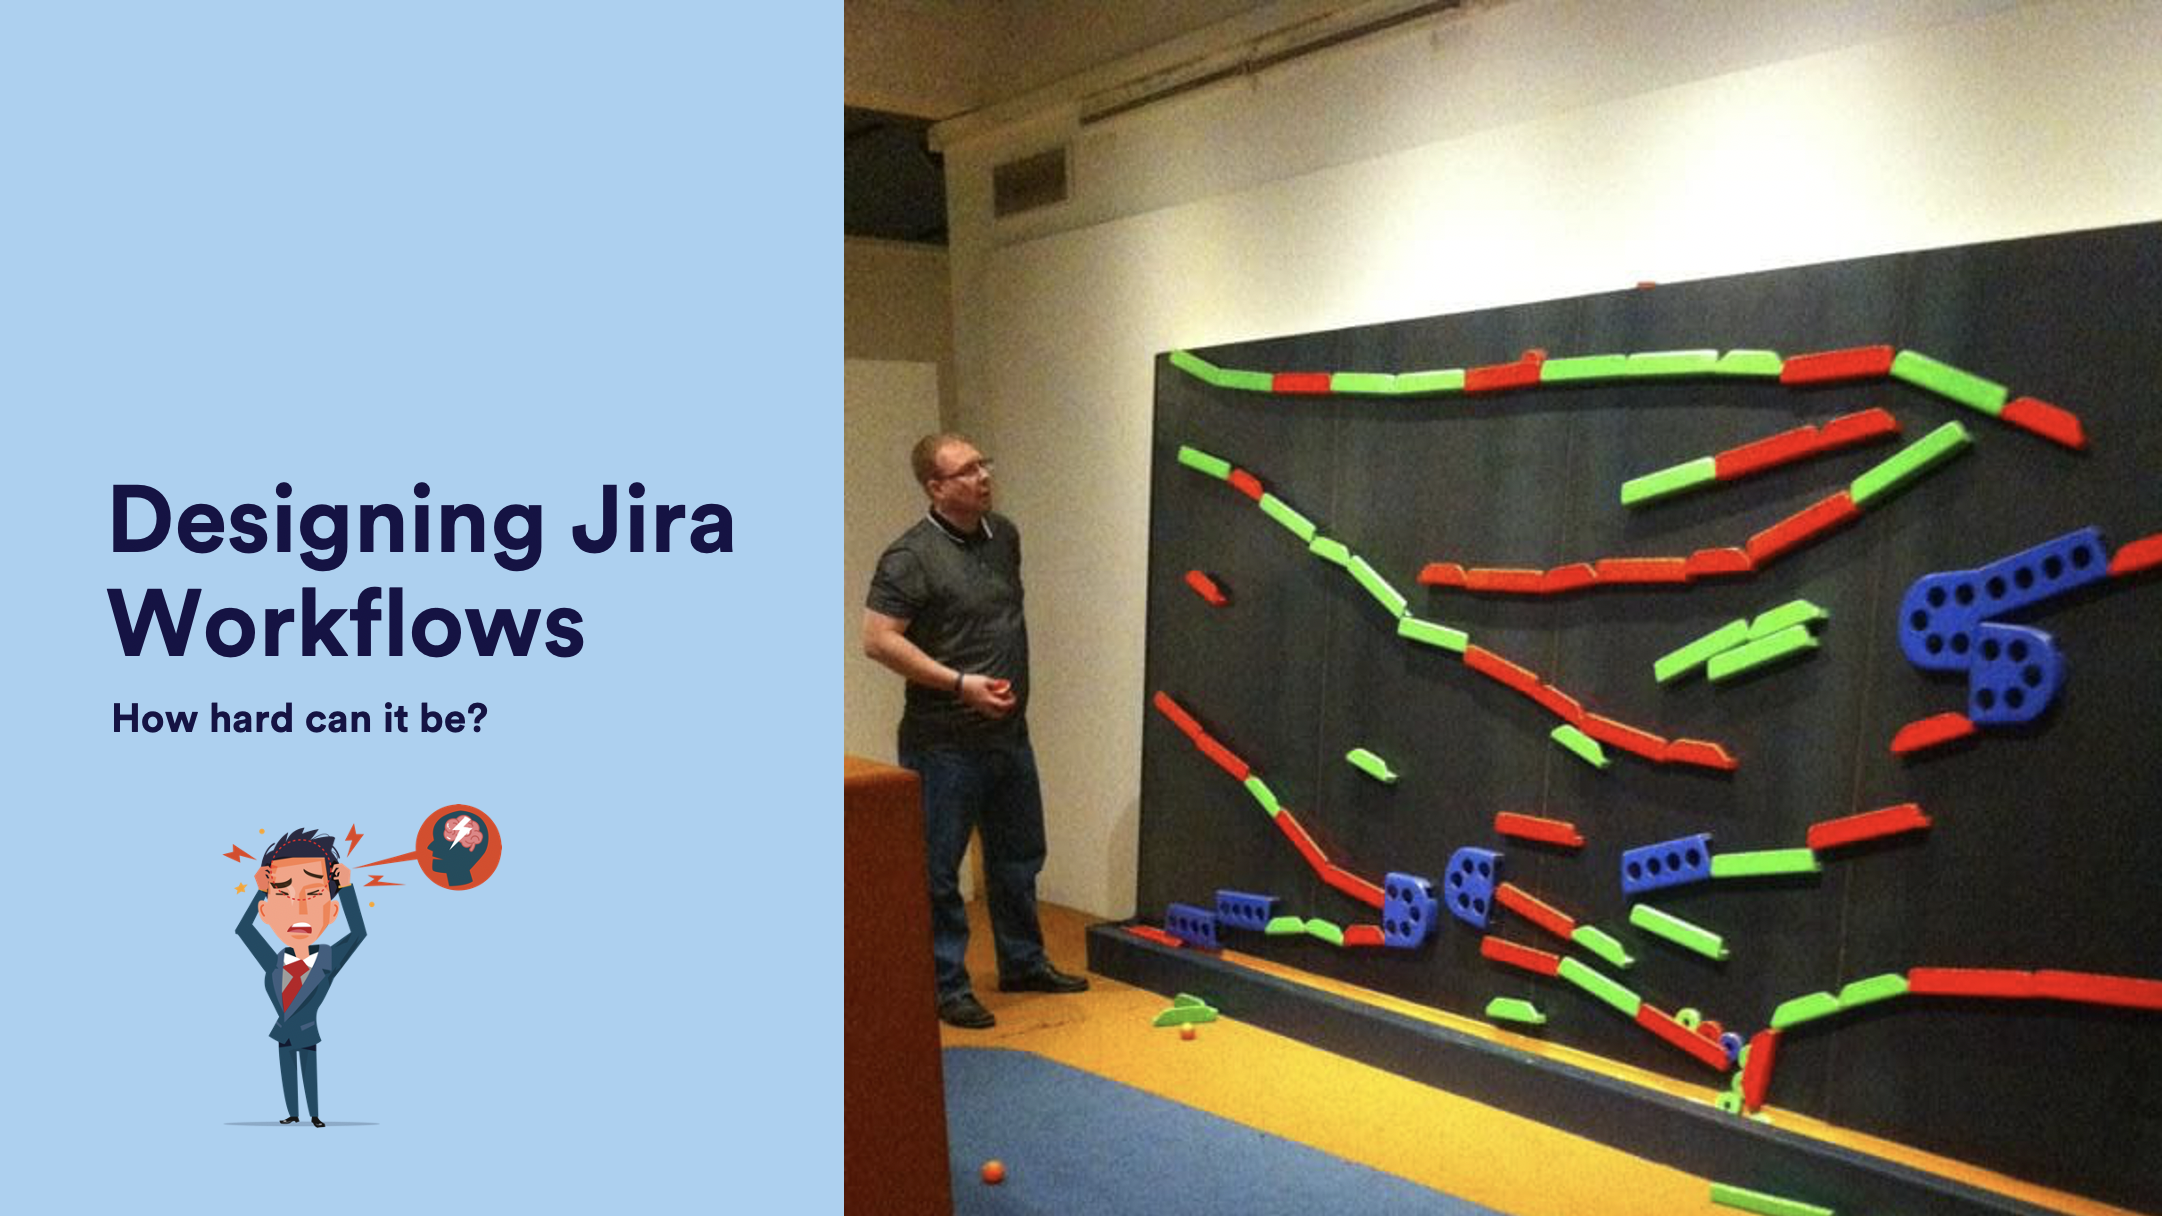 Designing Jira Workflows